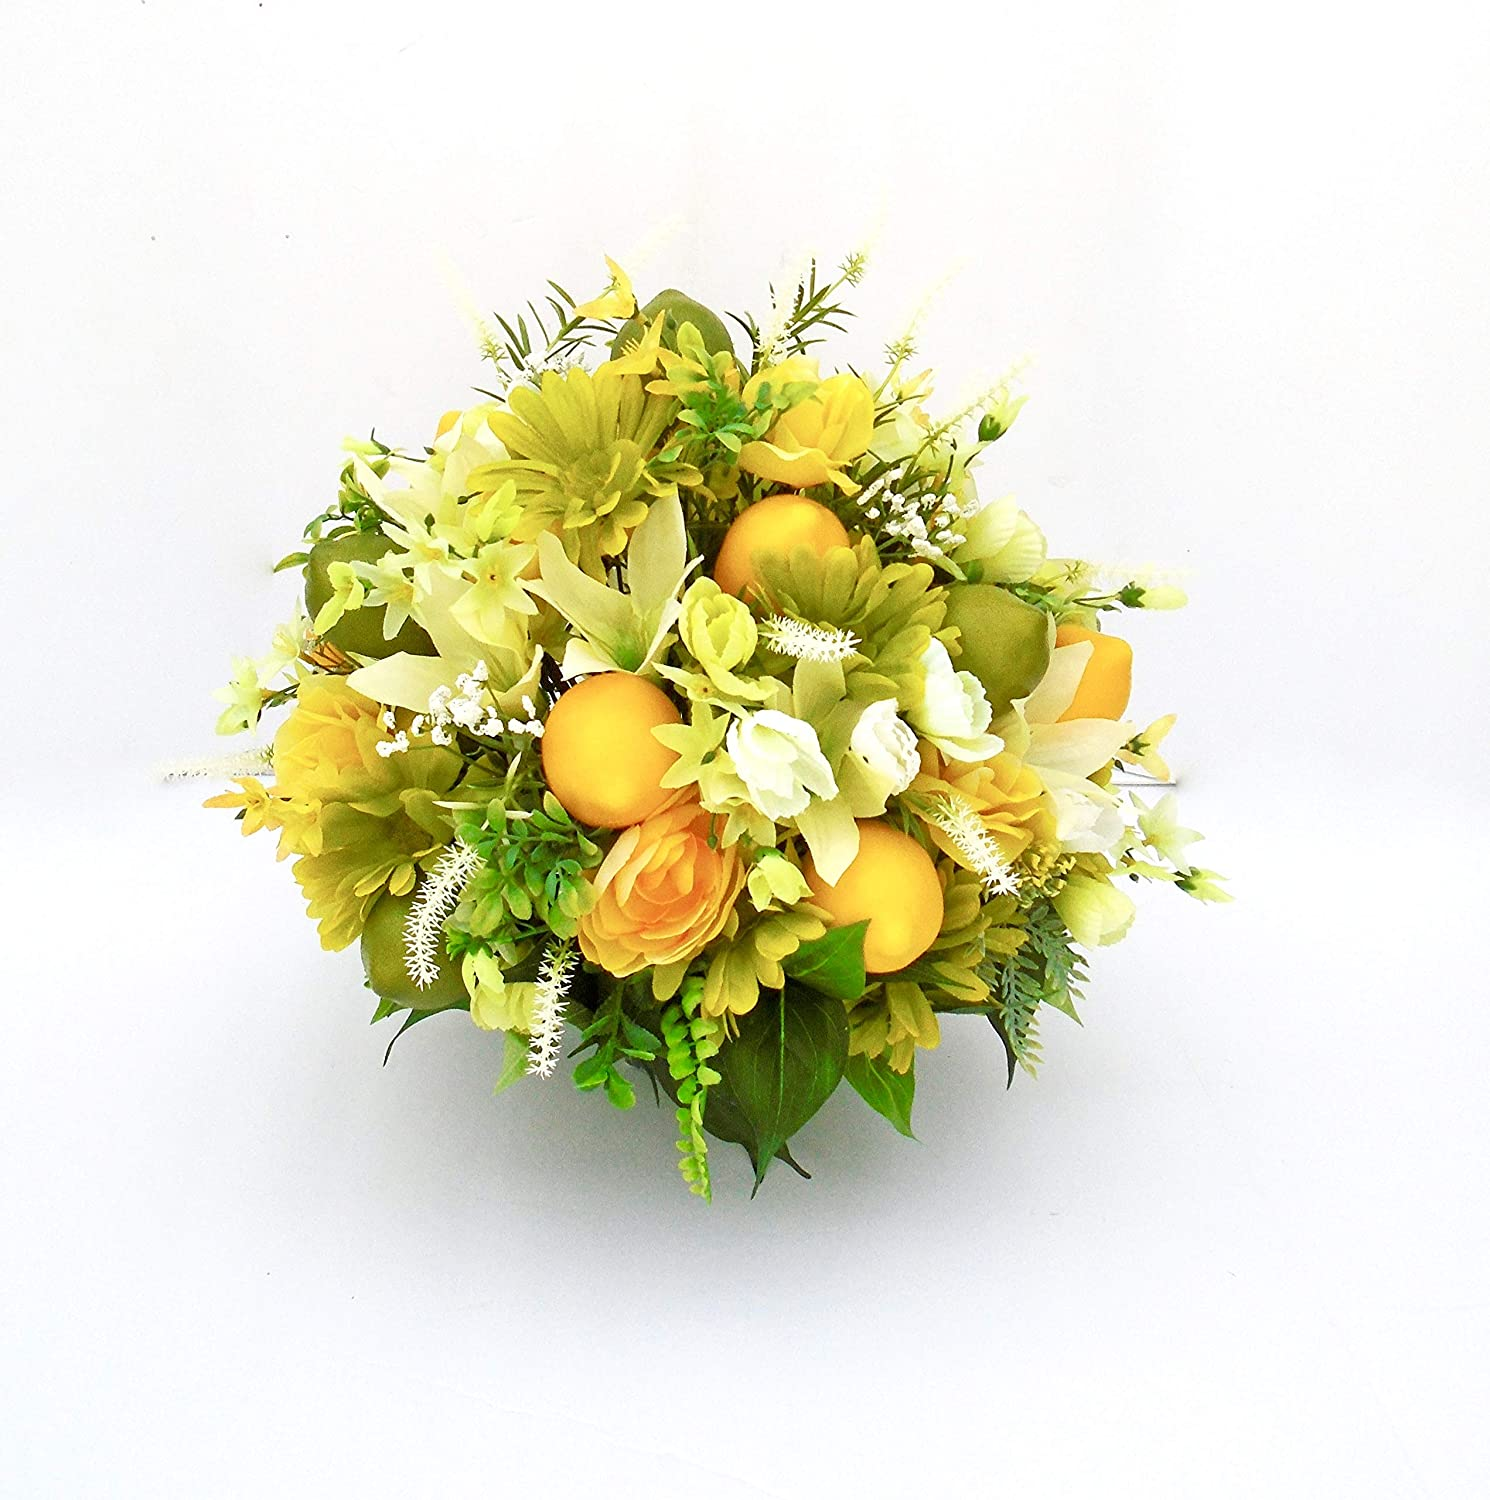 Beautiful Silk Floral Brand Cheap Sale Venue Arrangement with Ranking TOP17 Limes and Lemons